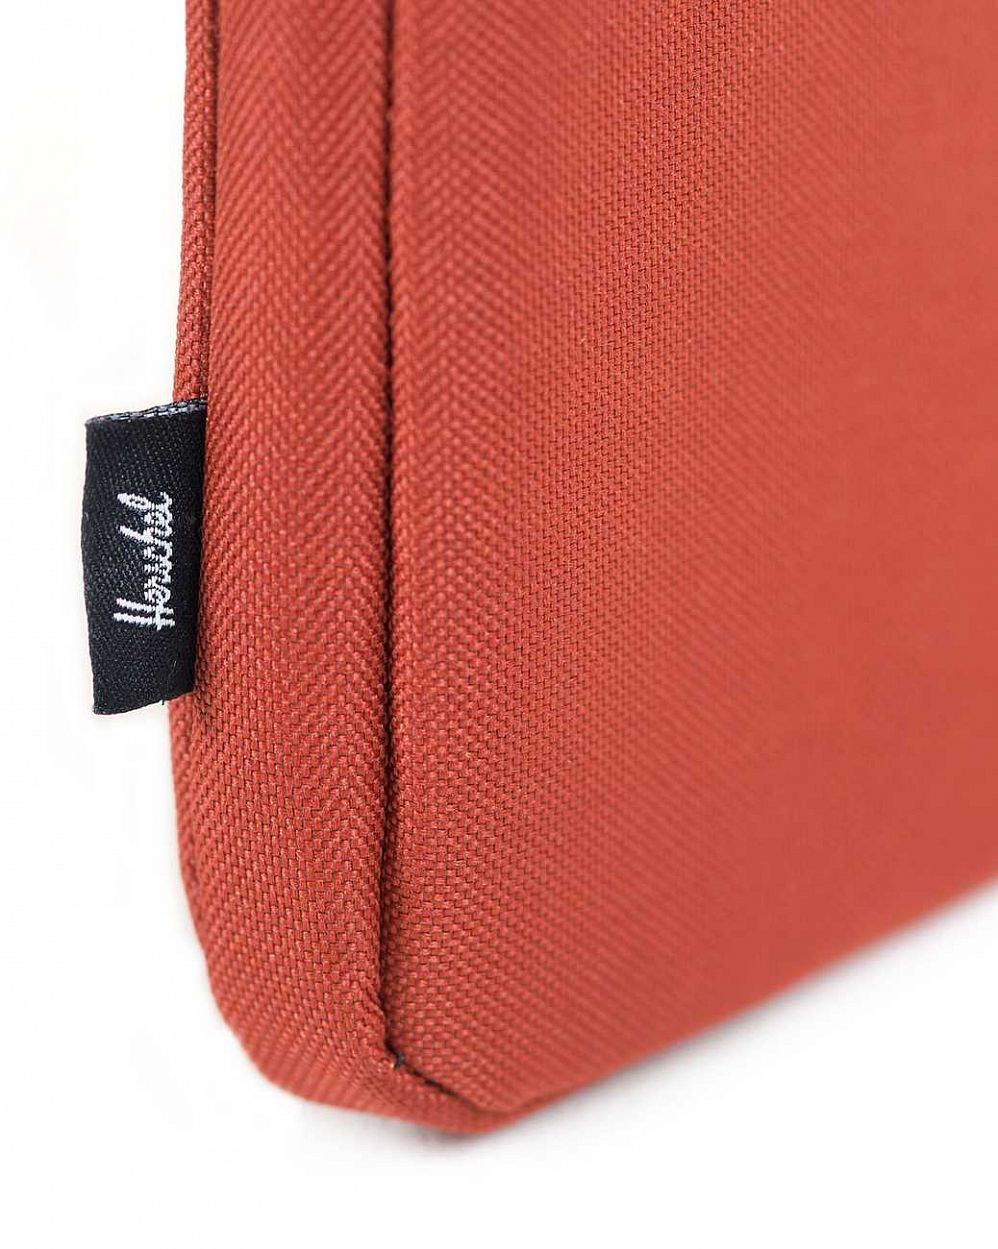 Чехол Herschel Anchor Sleeve для 11'' Macbook Rust отзывы